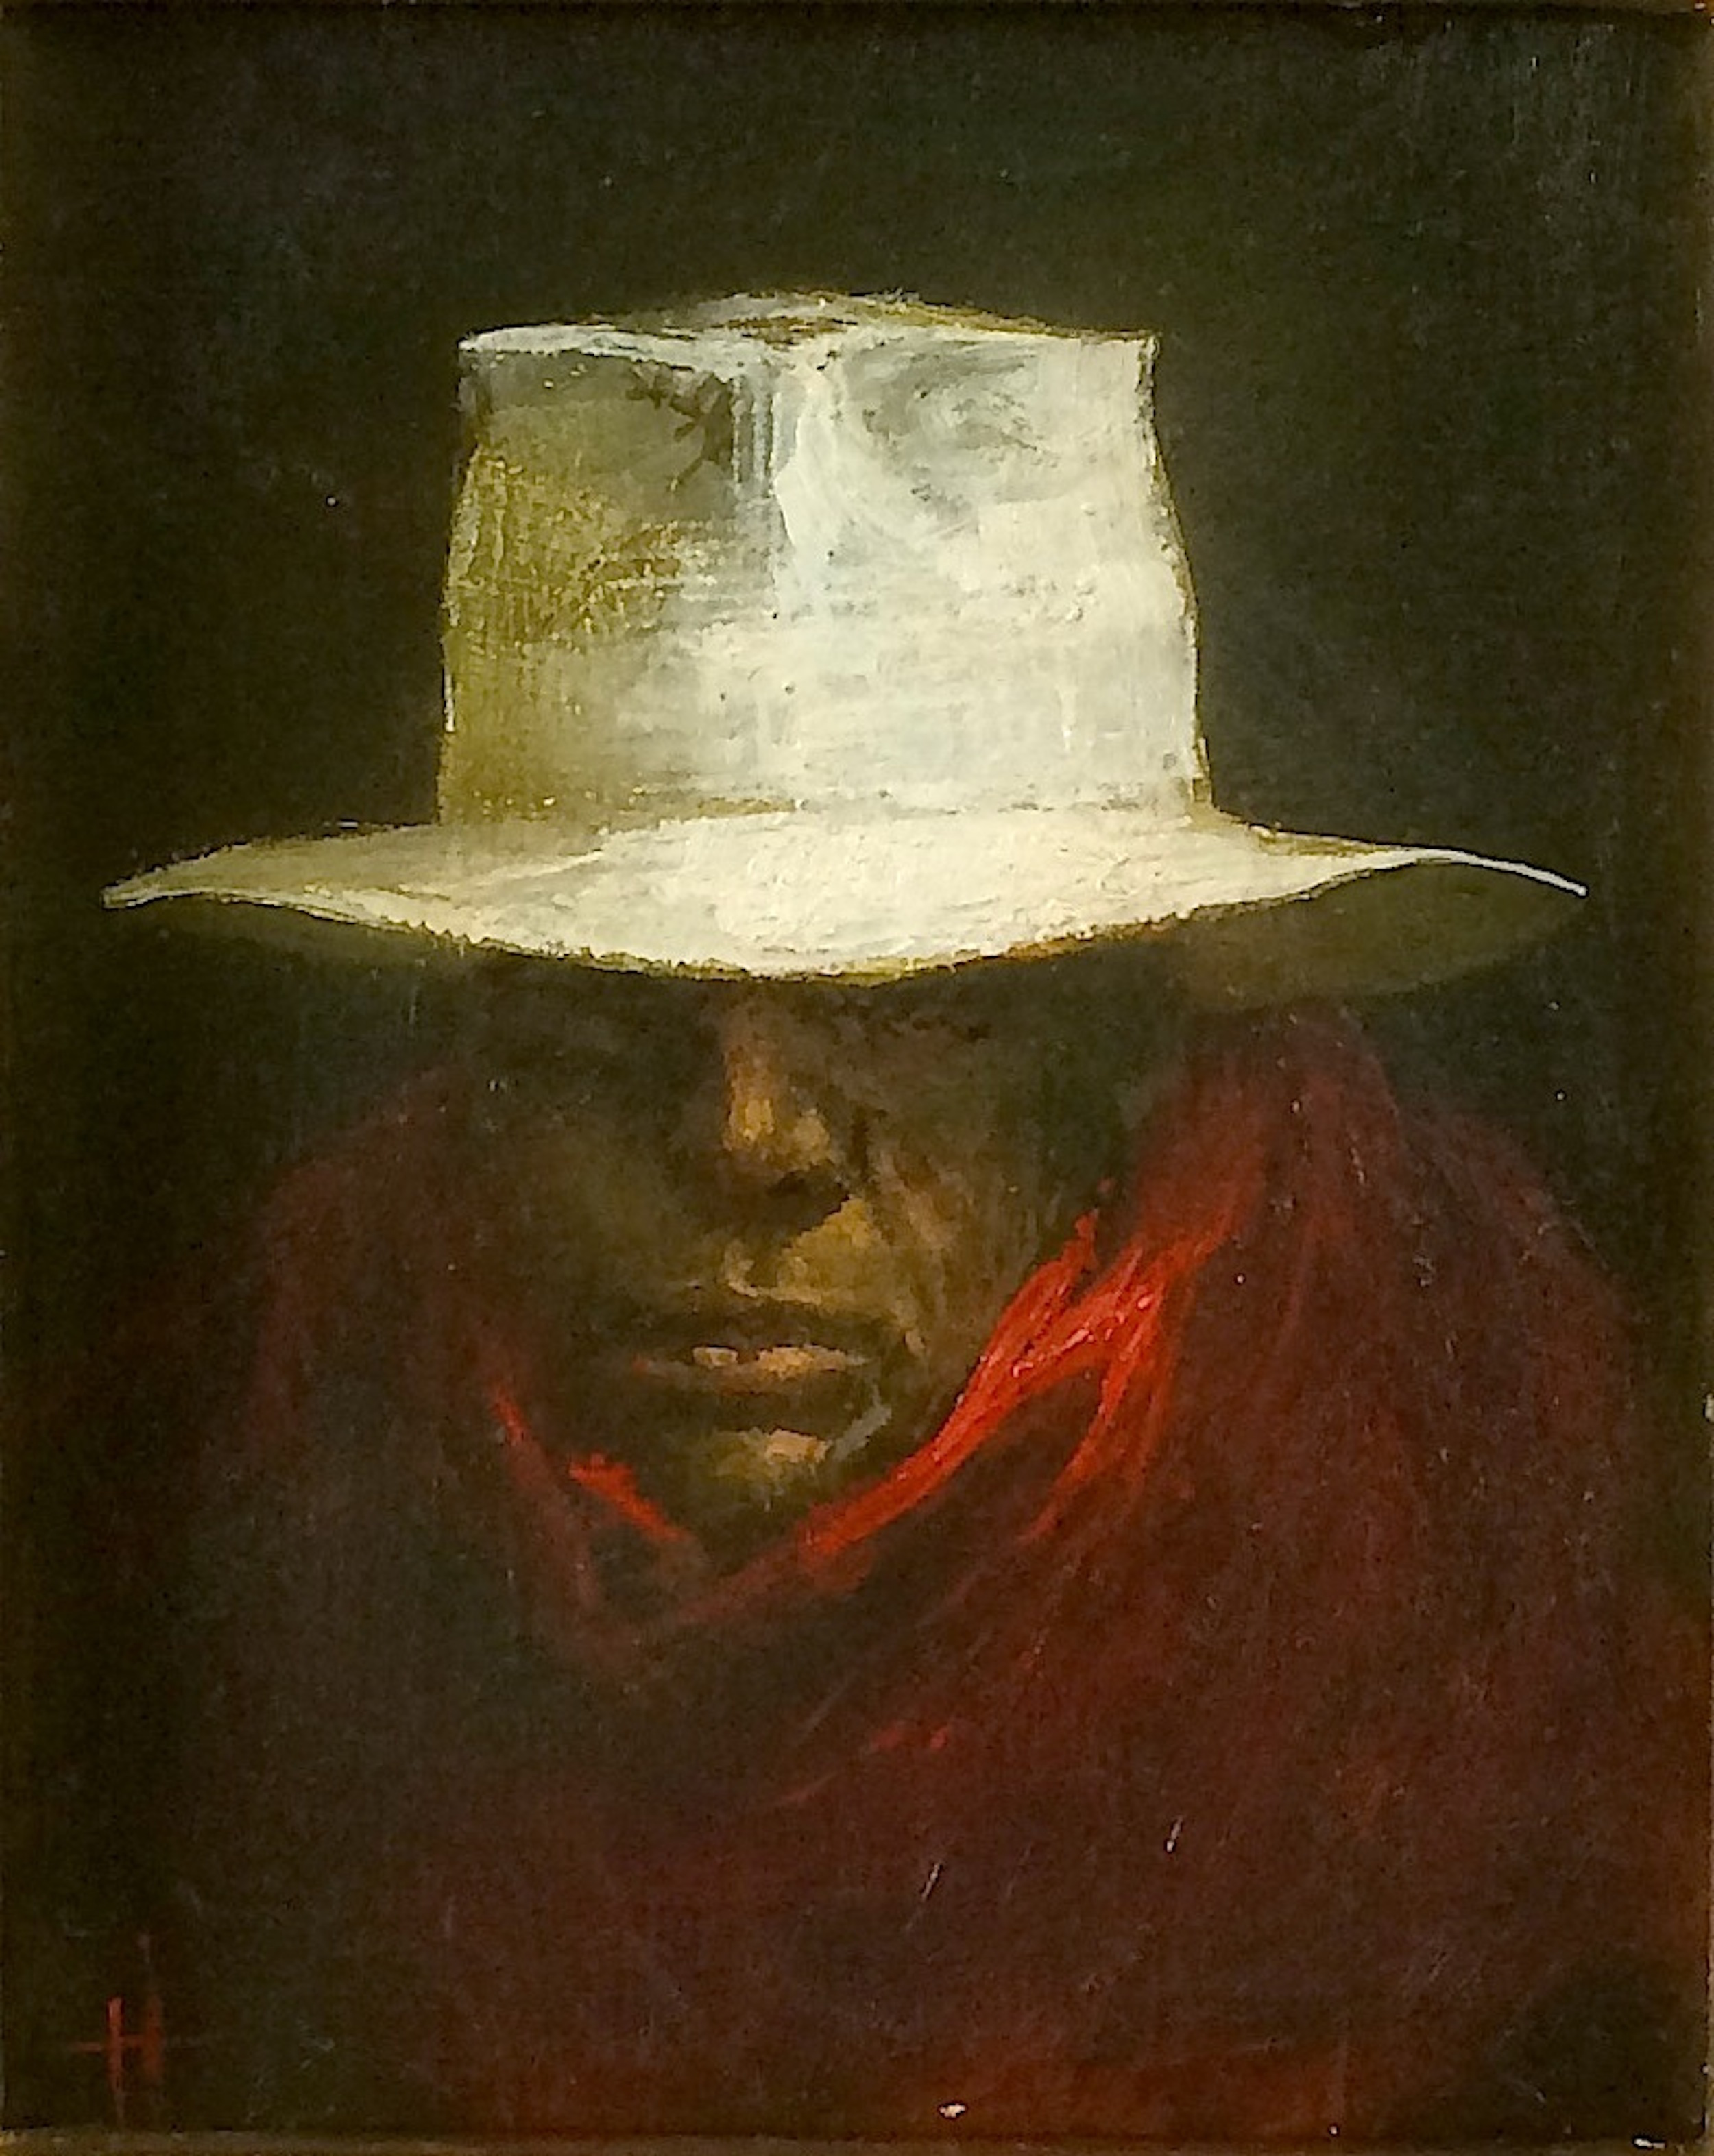 Title: White Hat  Size: 16 x 12.5 cm  Medium: Oil on panel  Price: £1,250